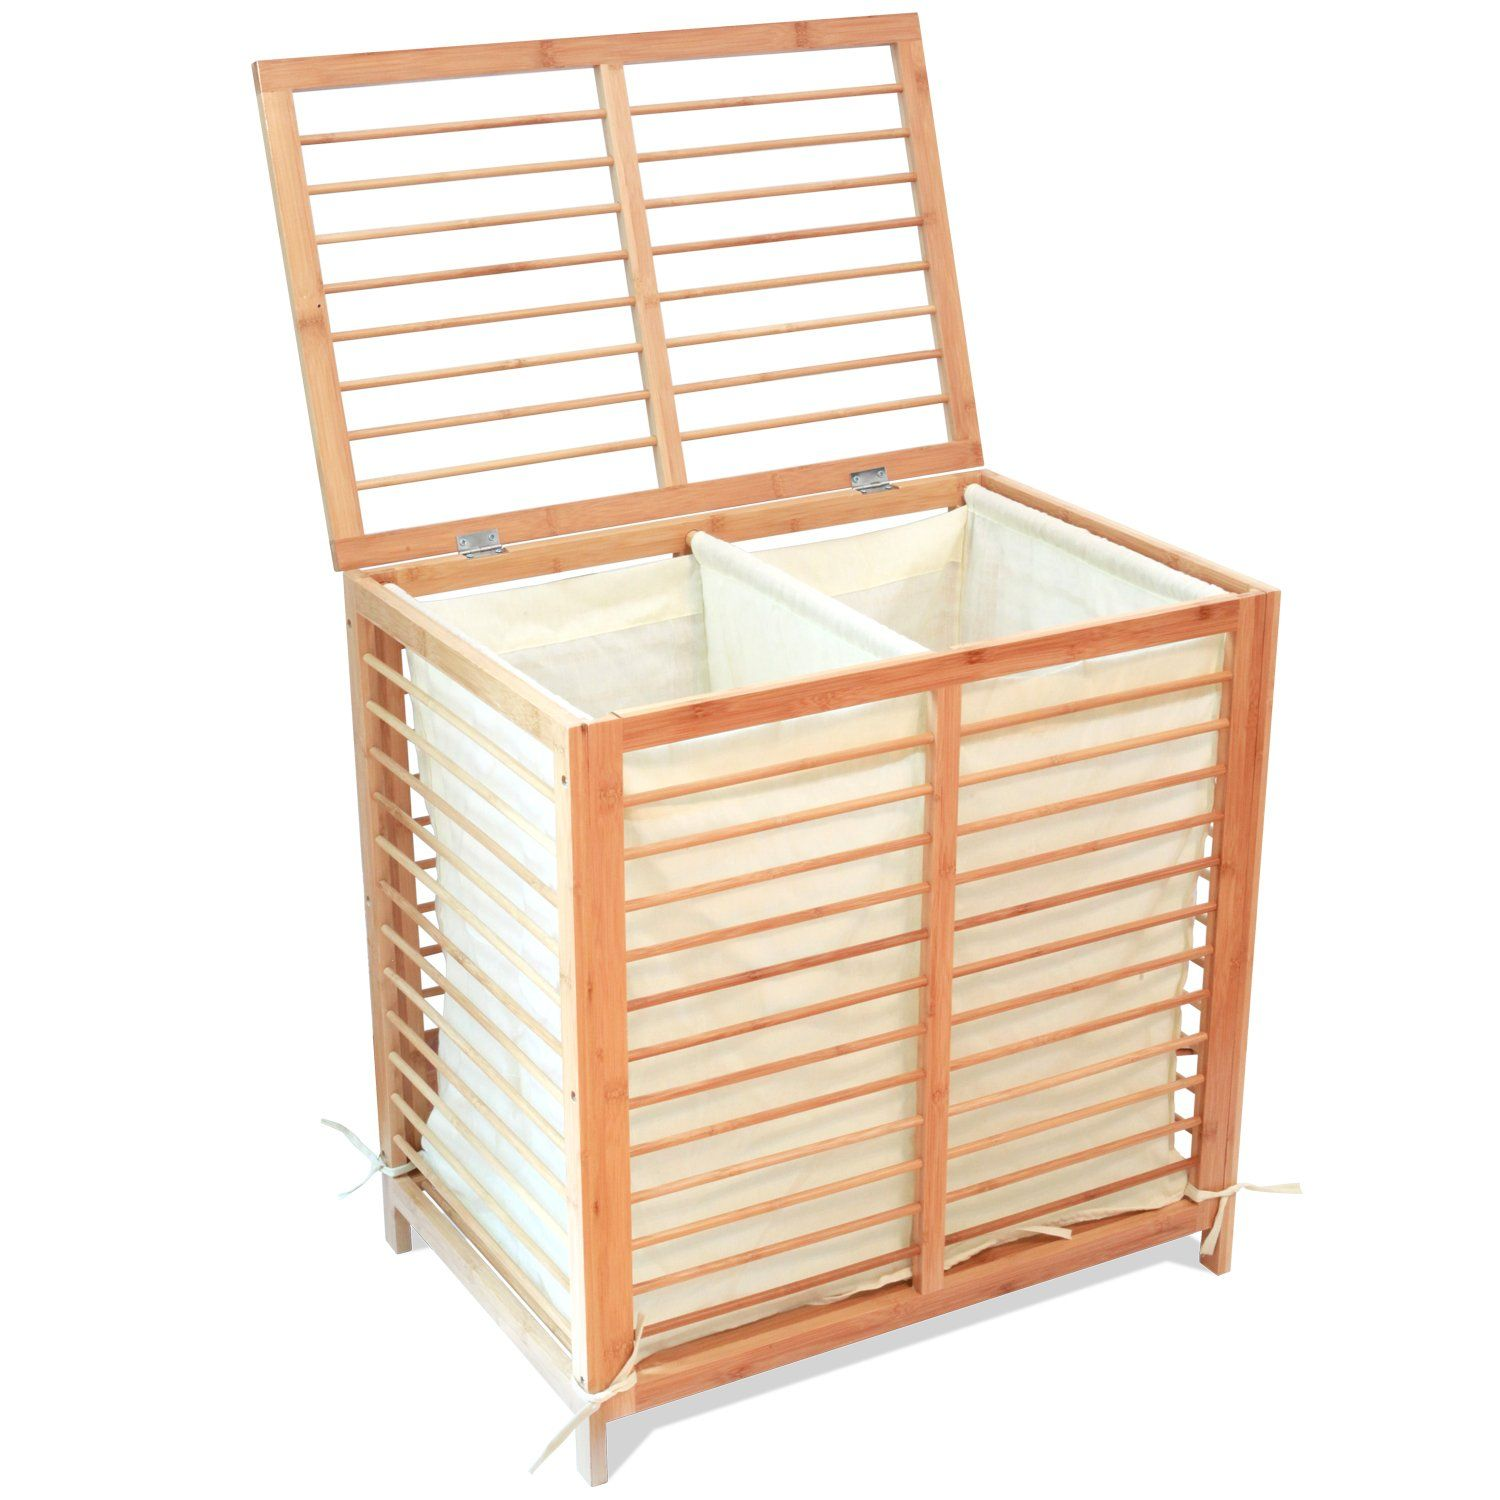 Deluxe Bamboo Hamper With 2 Separate Compartments For Easy